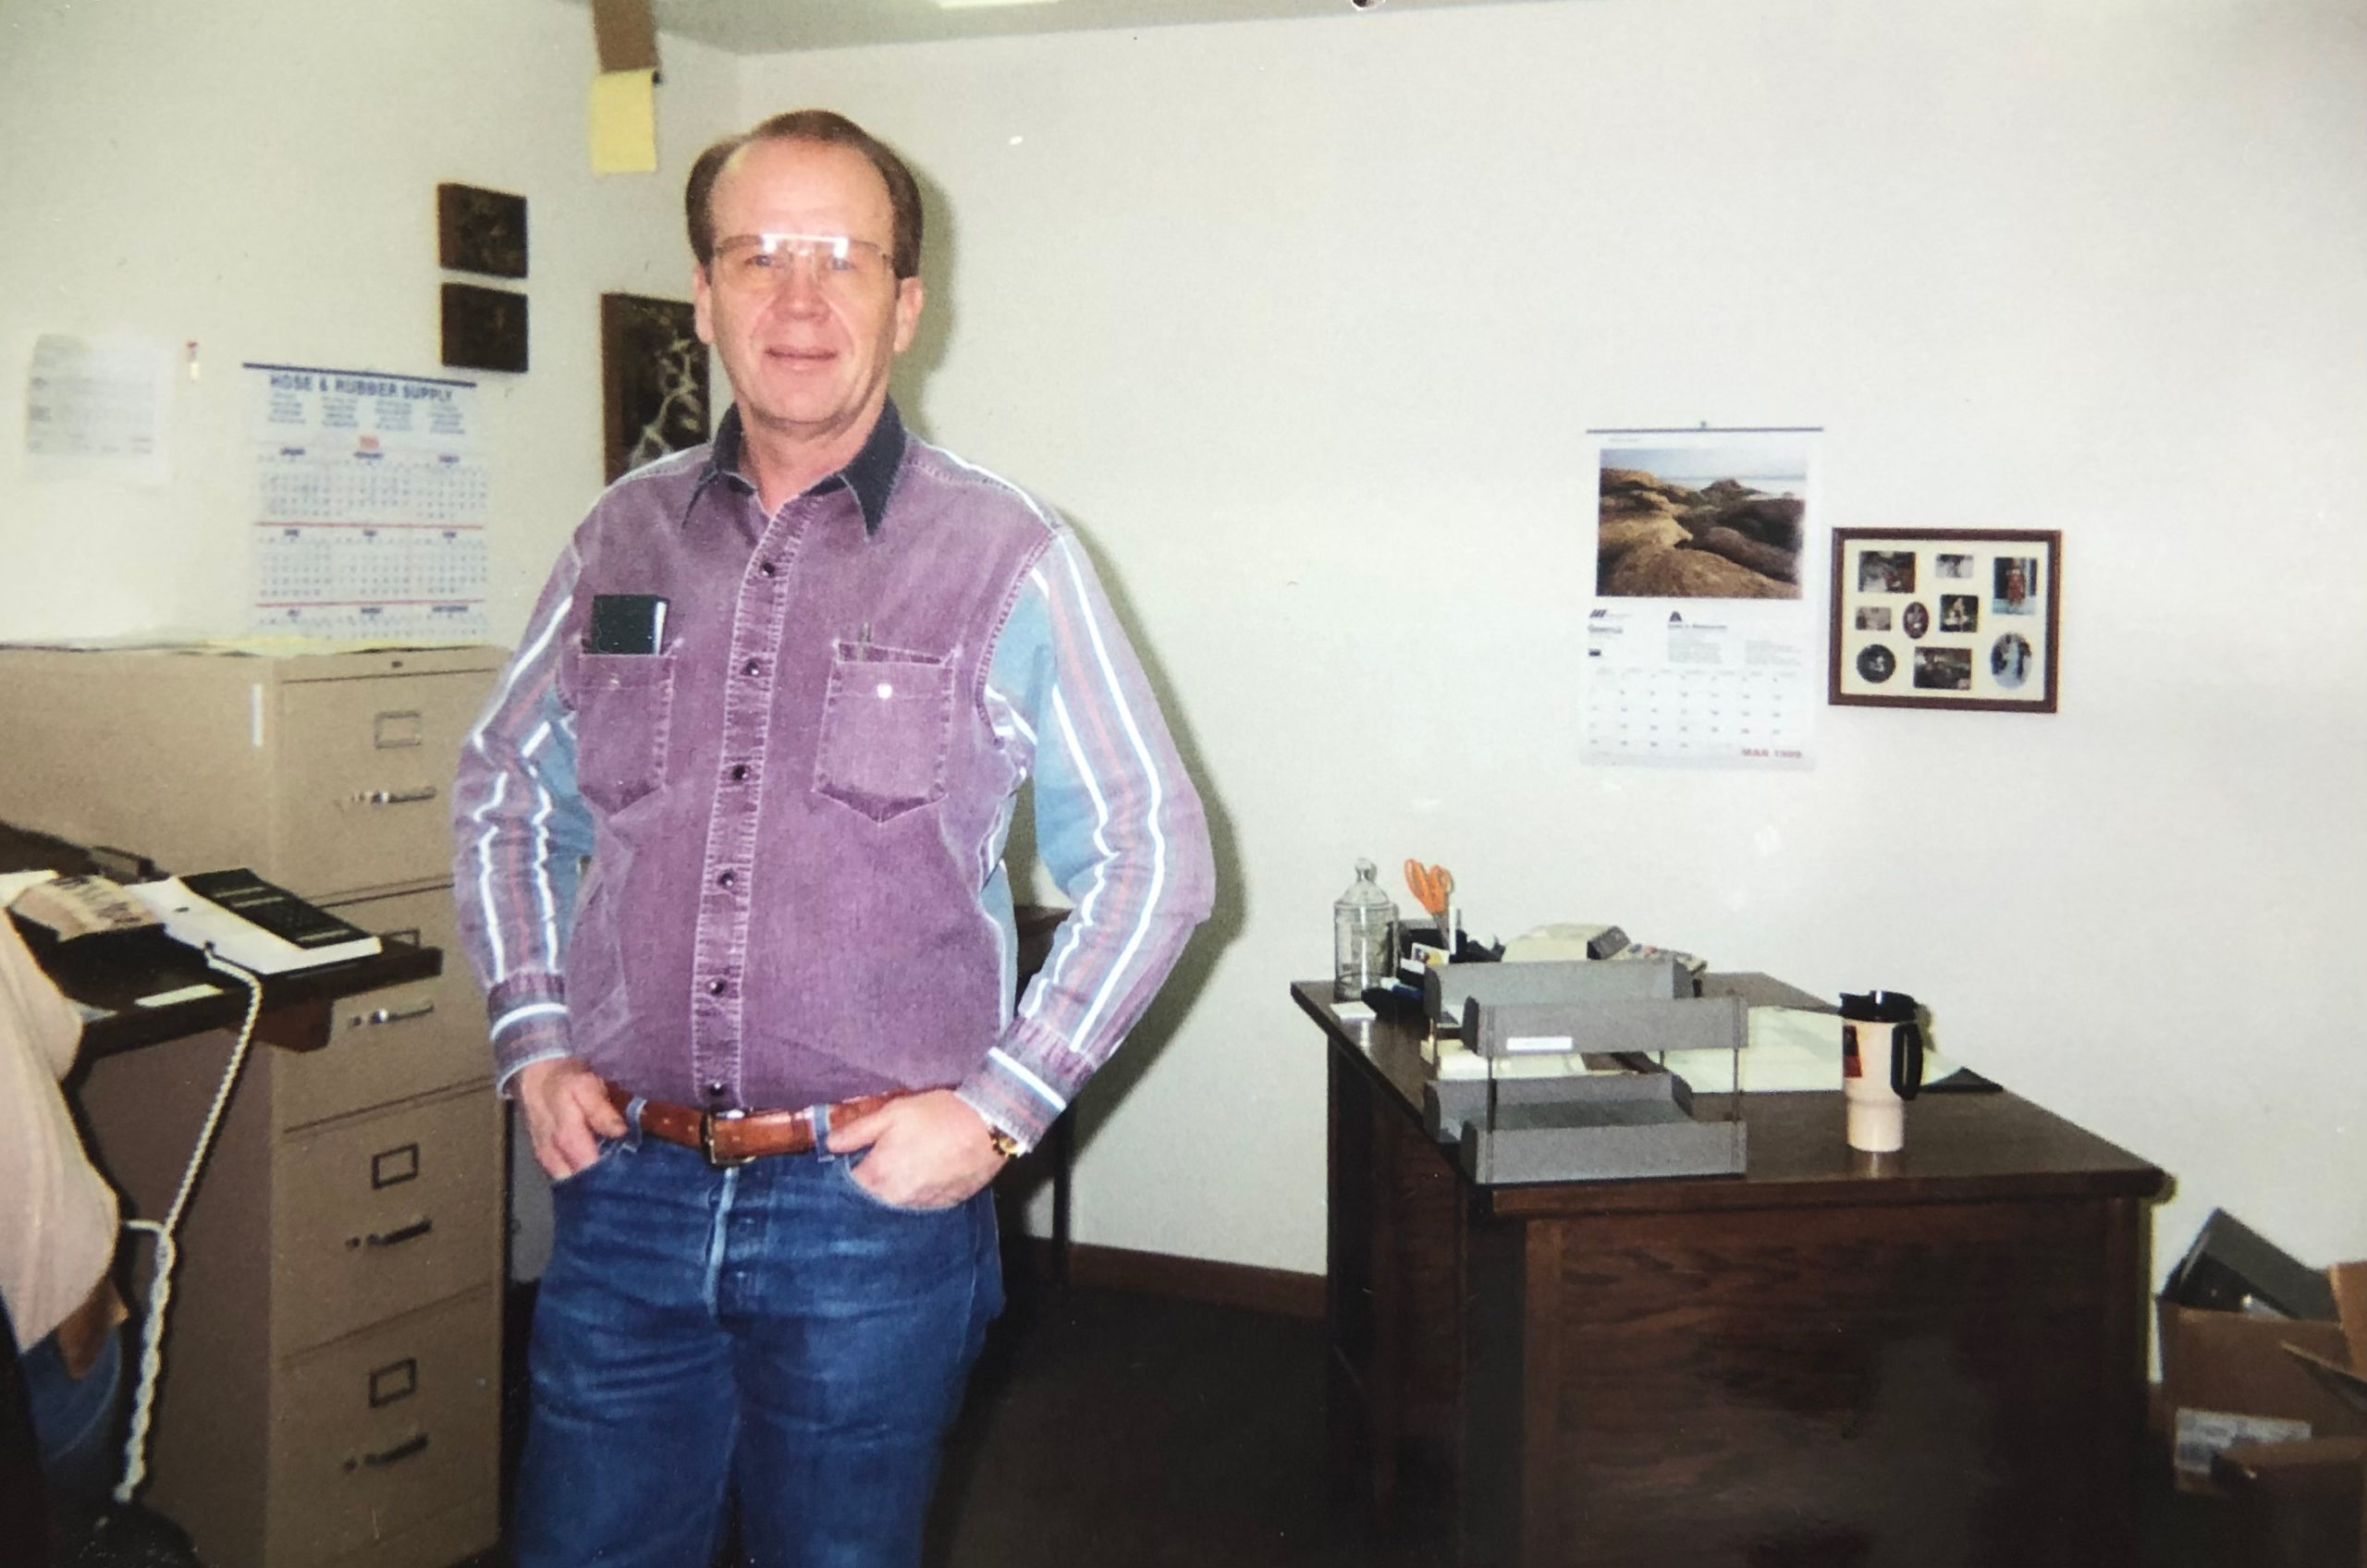 Founder Gary Waldo stands by his desk